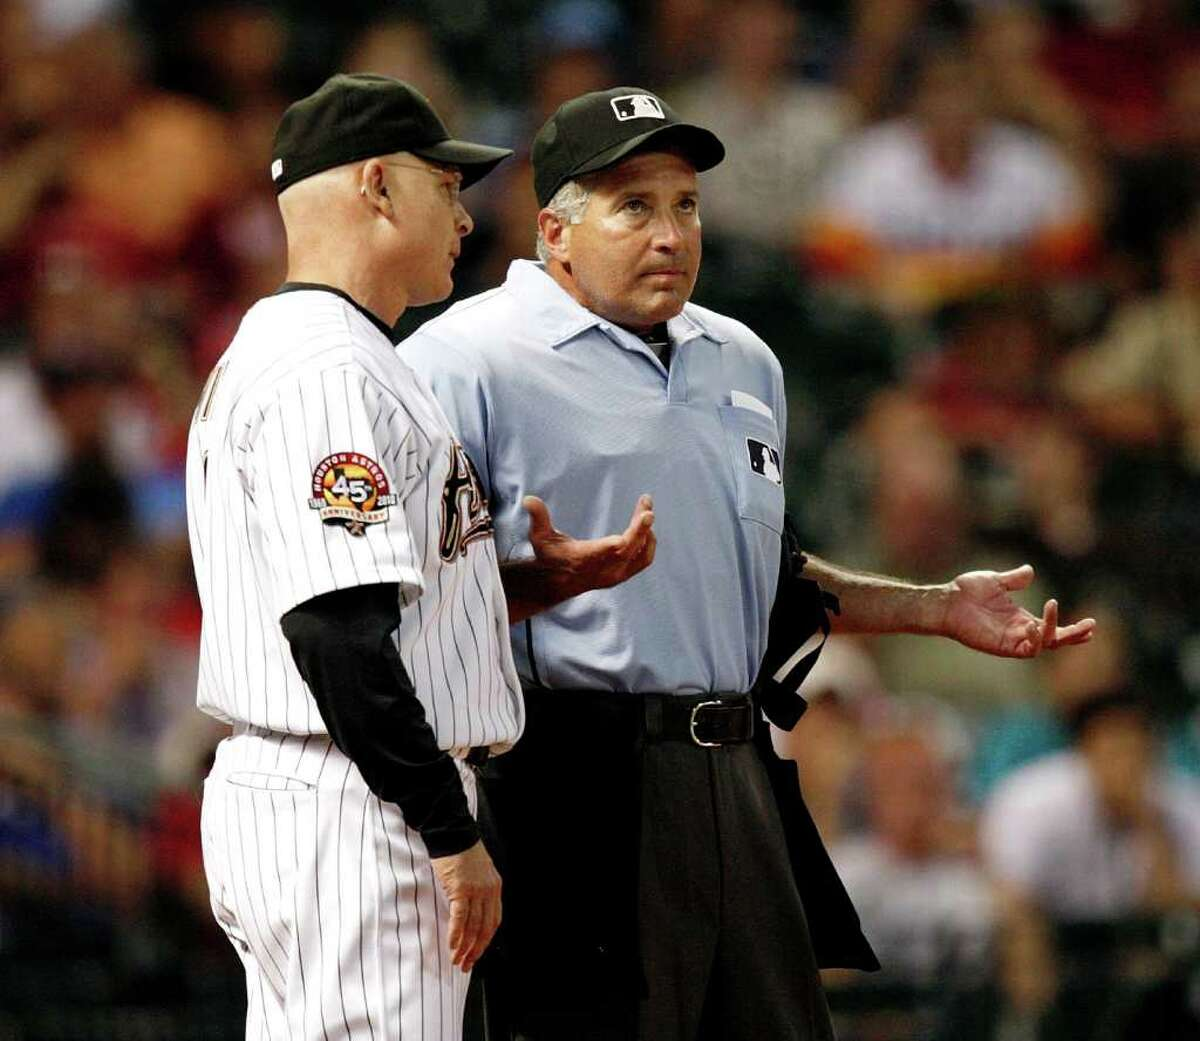 HOUSTON - AUGUST 30: Houston Astros manager Brad Mills (L) argues with home plate umpire John Hirschbeck as to whether Tommy Manzella fouled the ball on the third strike against the St. Louis Cardinals on August 30, 2010 in Houston, Texas. The Astros beat the Cardinals 3-0. (Photo by Bob Levey/Getty Images) *** Local Caption *** Brad Mills;John Hirschbeck